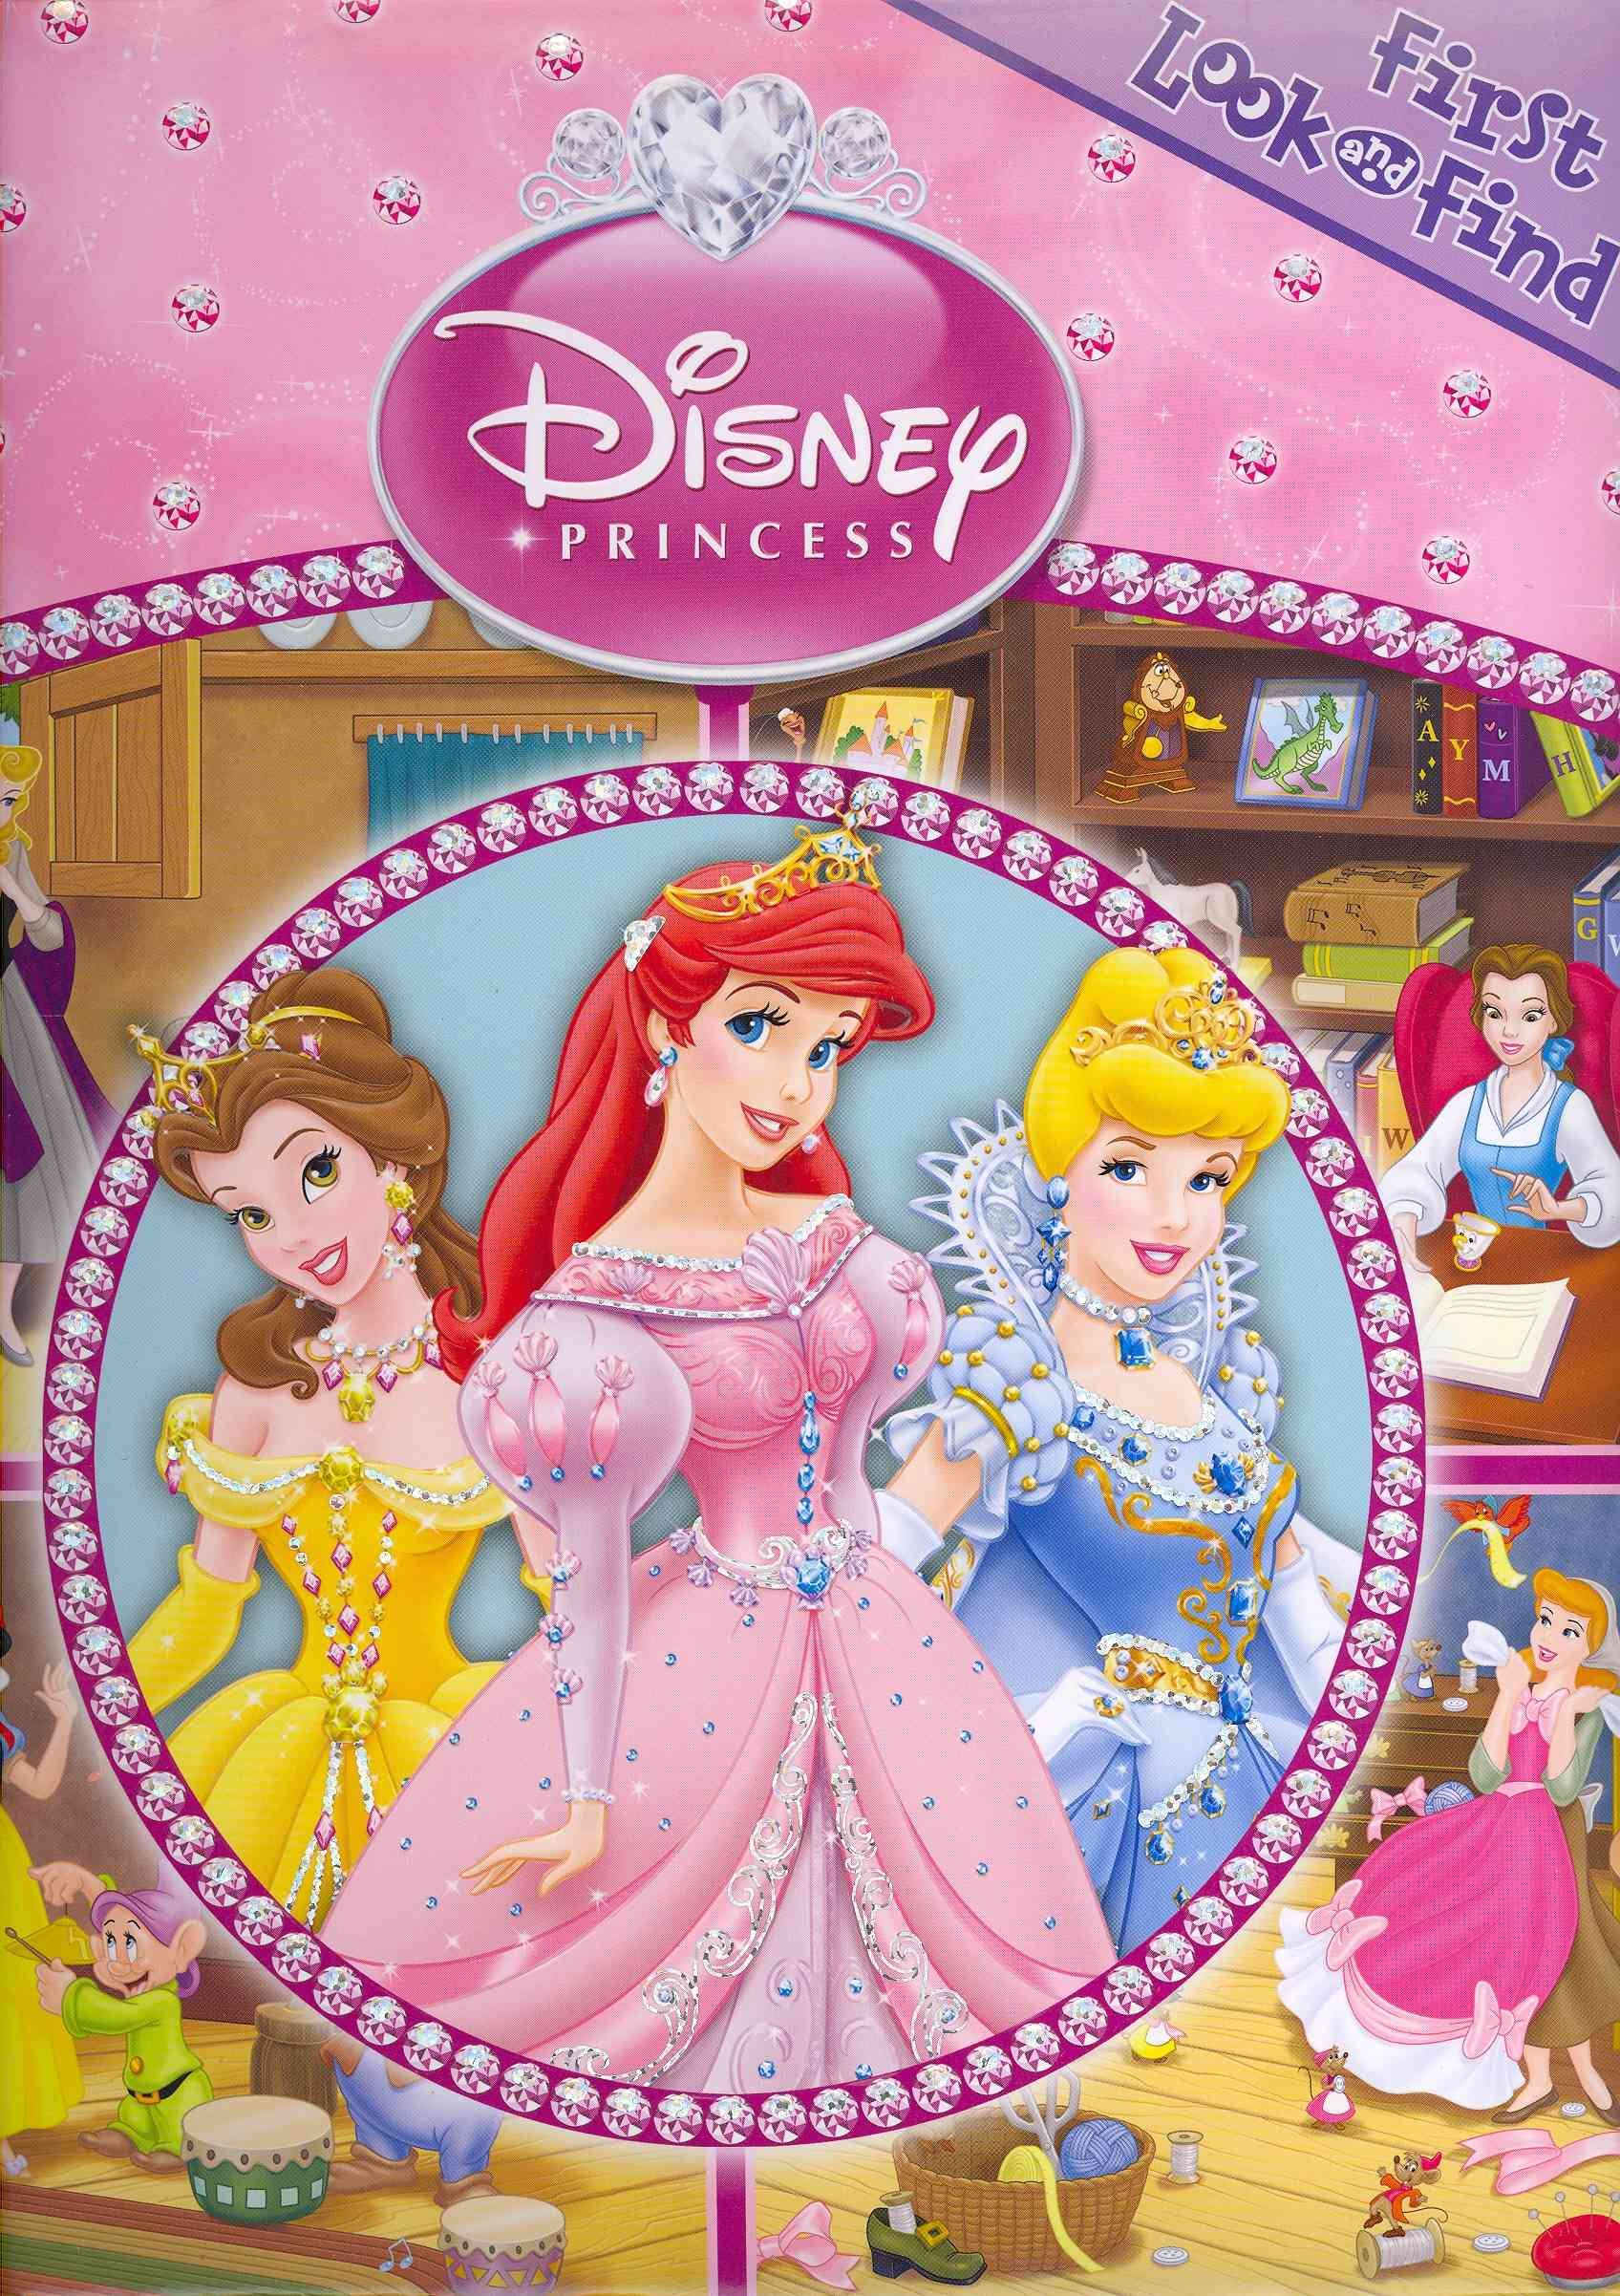 Disney Princess First Look and Find (Board book)